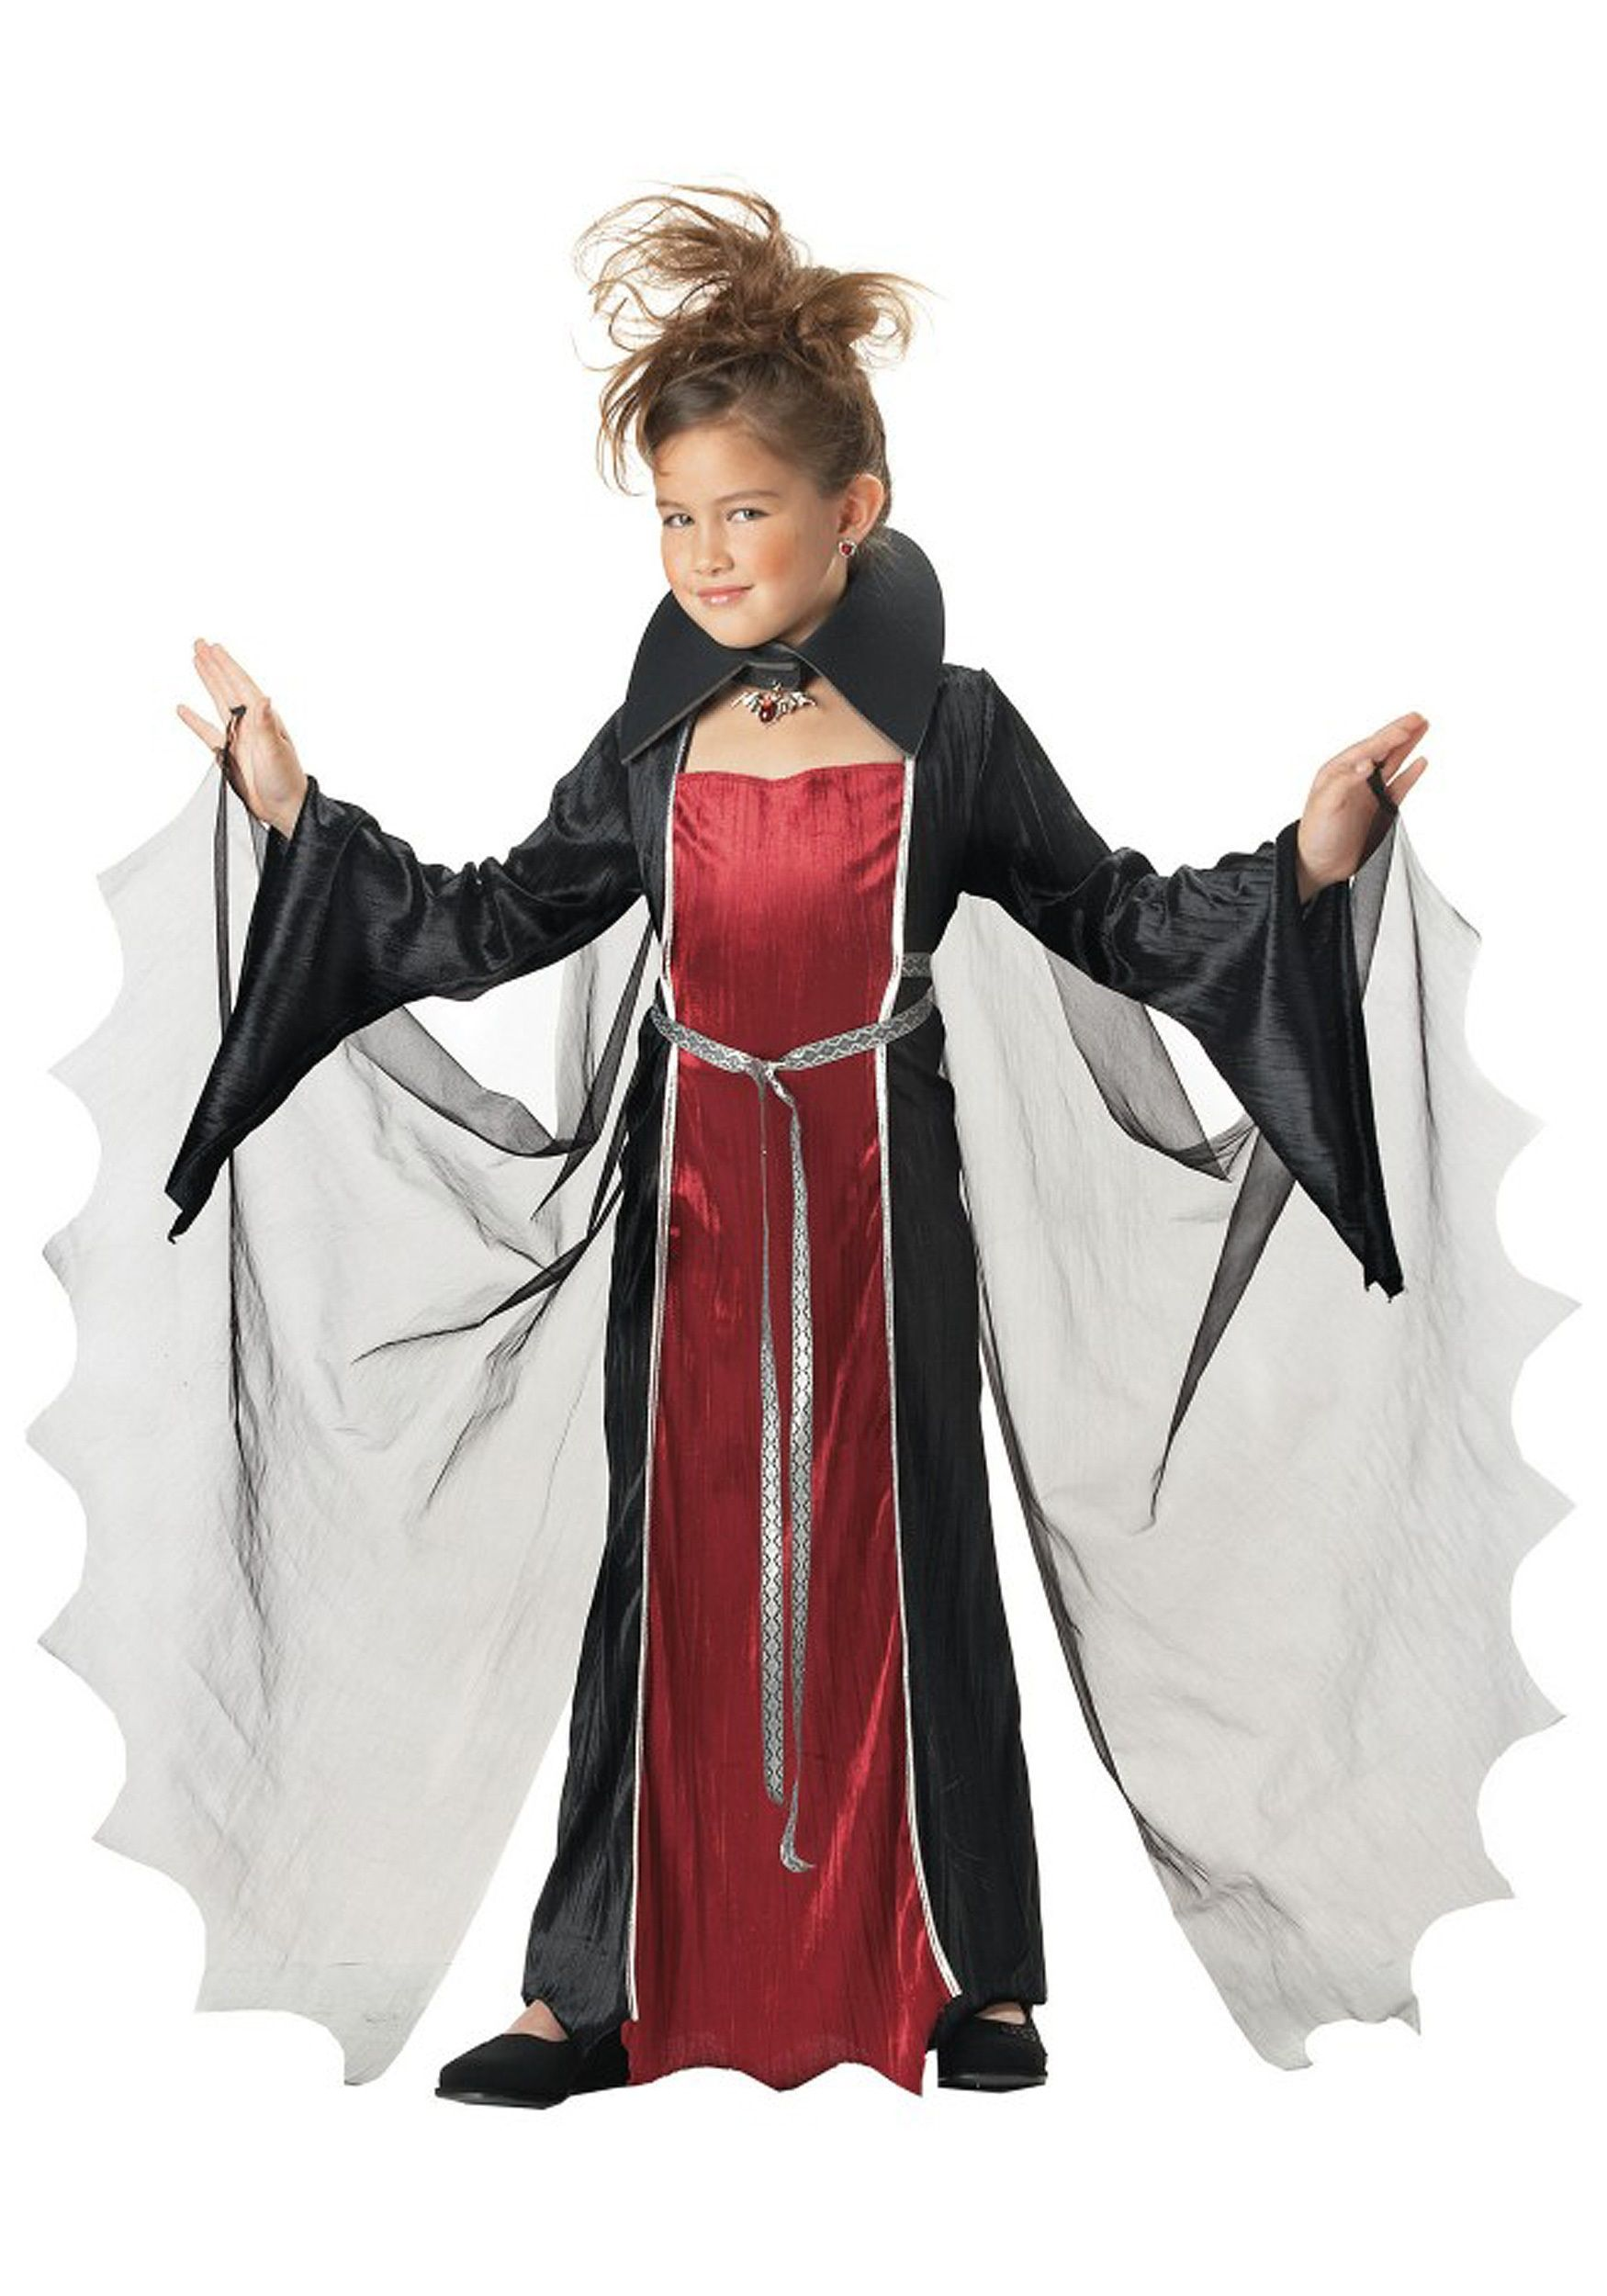 V&ire Costumes For Kids - HalloweenCostumes.com  sc 1 st  Pinterest & Vampire Costumes For Kids - HalloweenCostumes.com | Clothes for ...